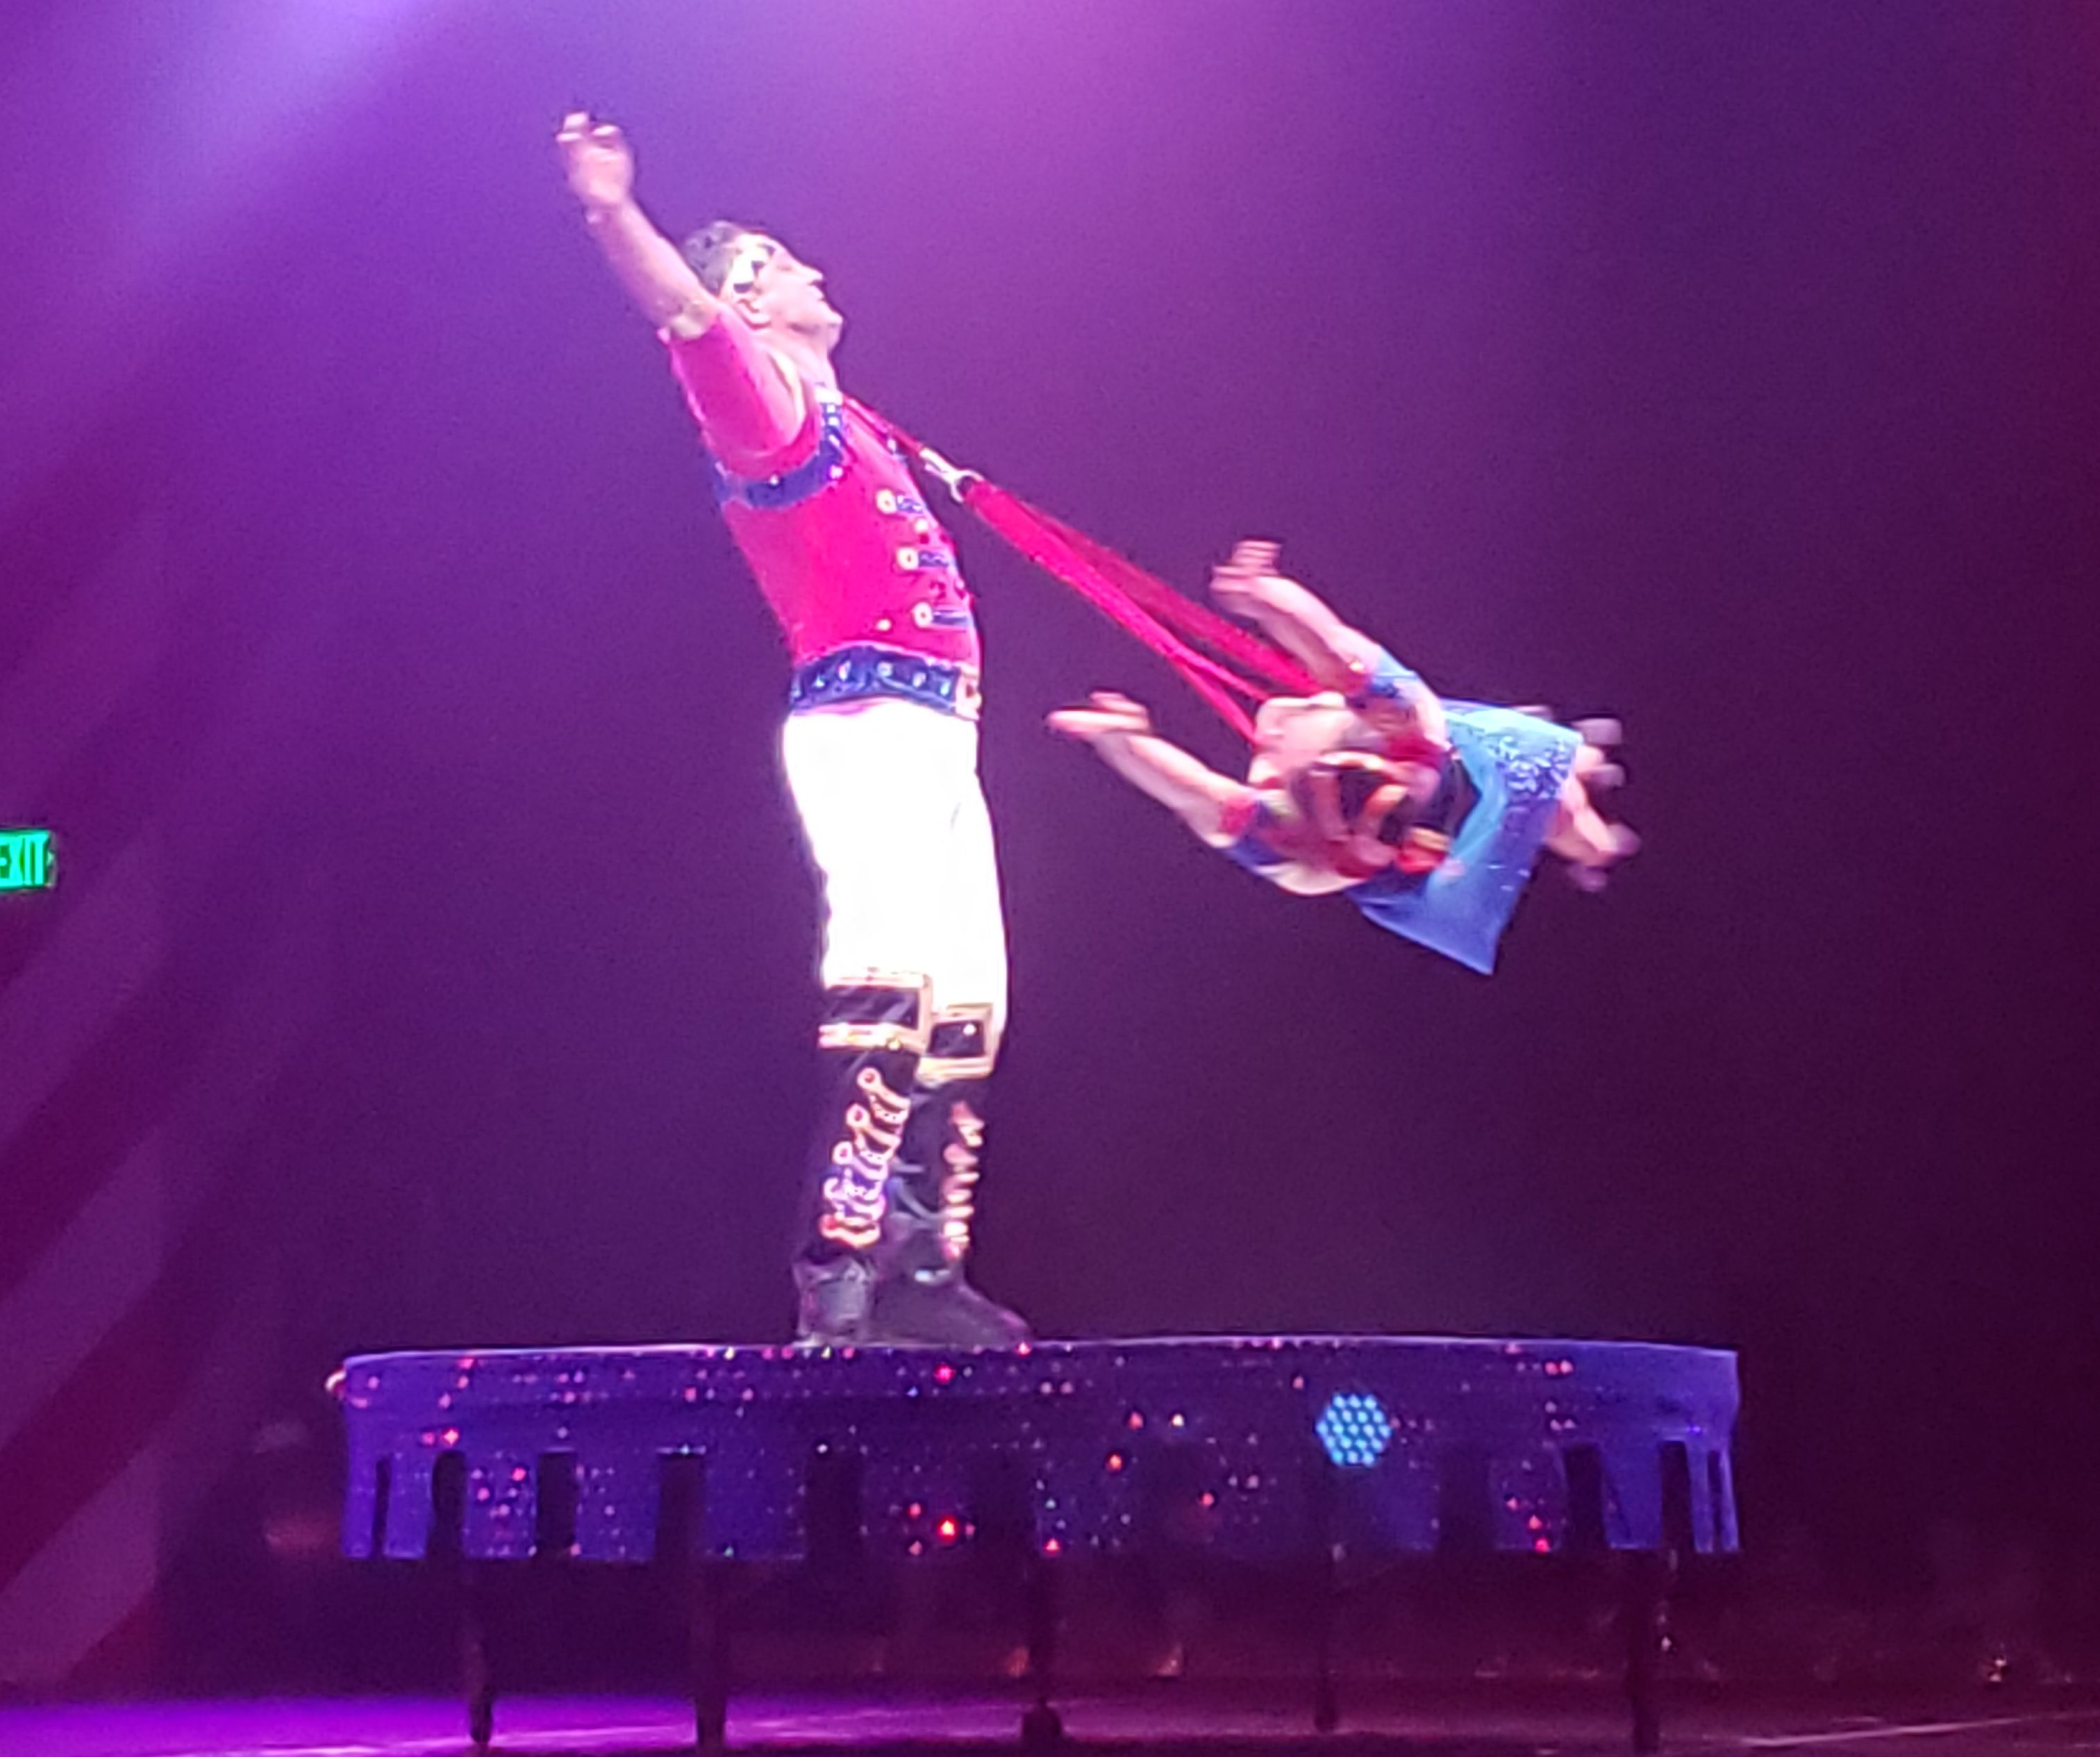 Cirque performers swinging on skates at Christmas at Gaylord of the Rockies